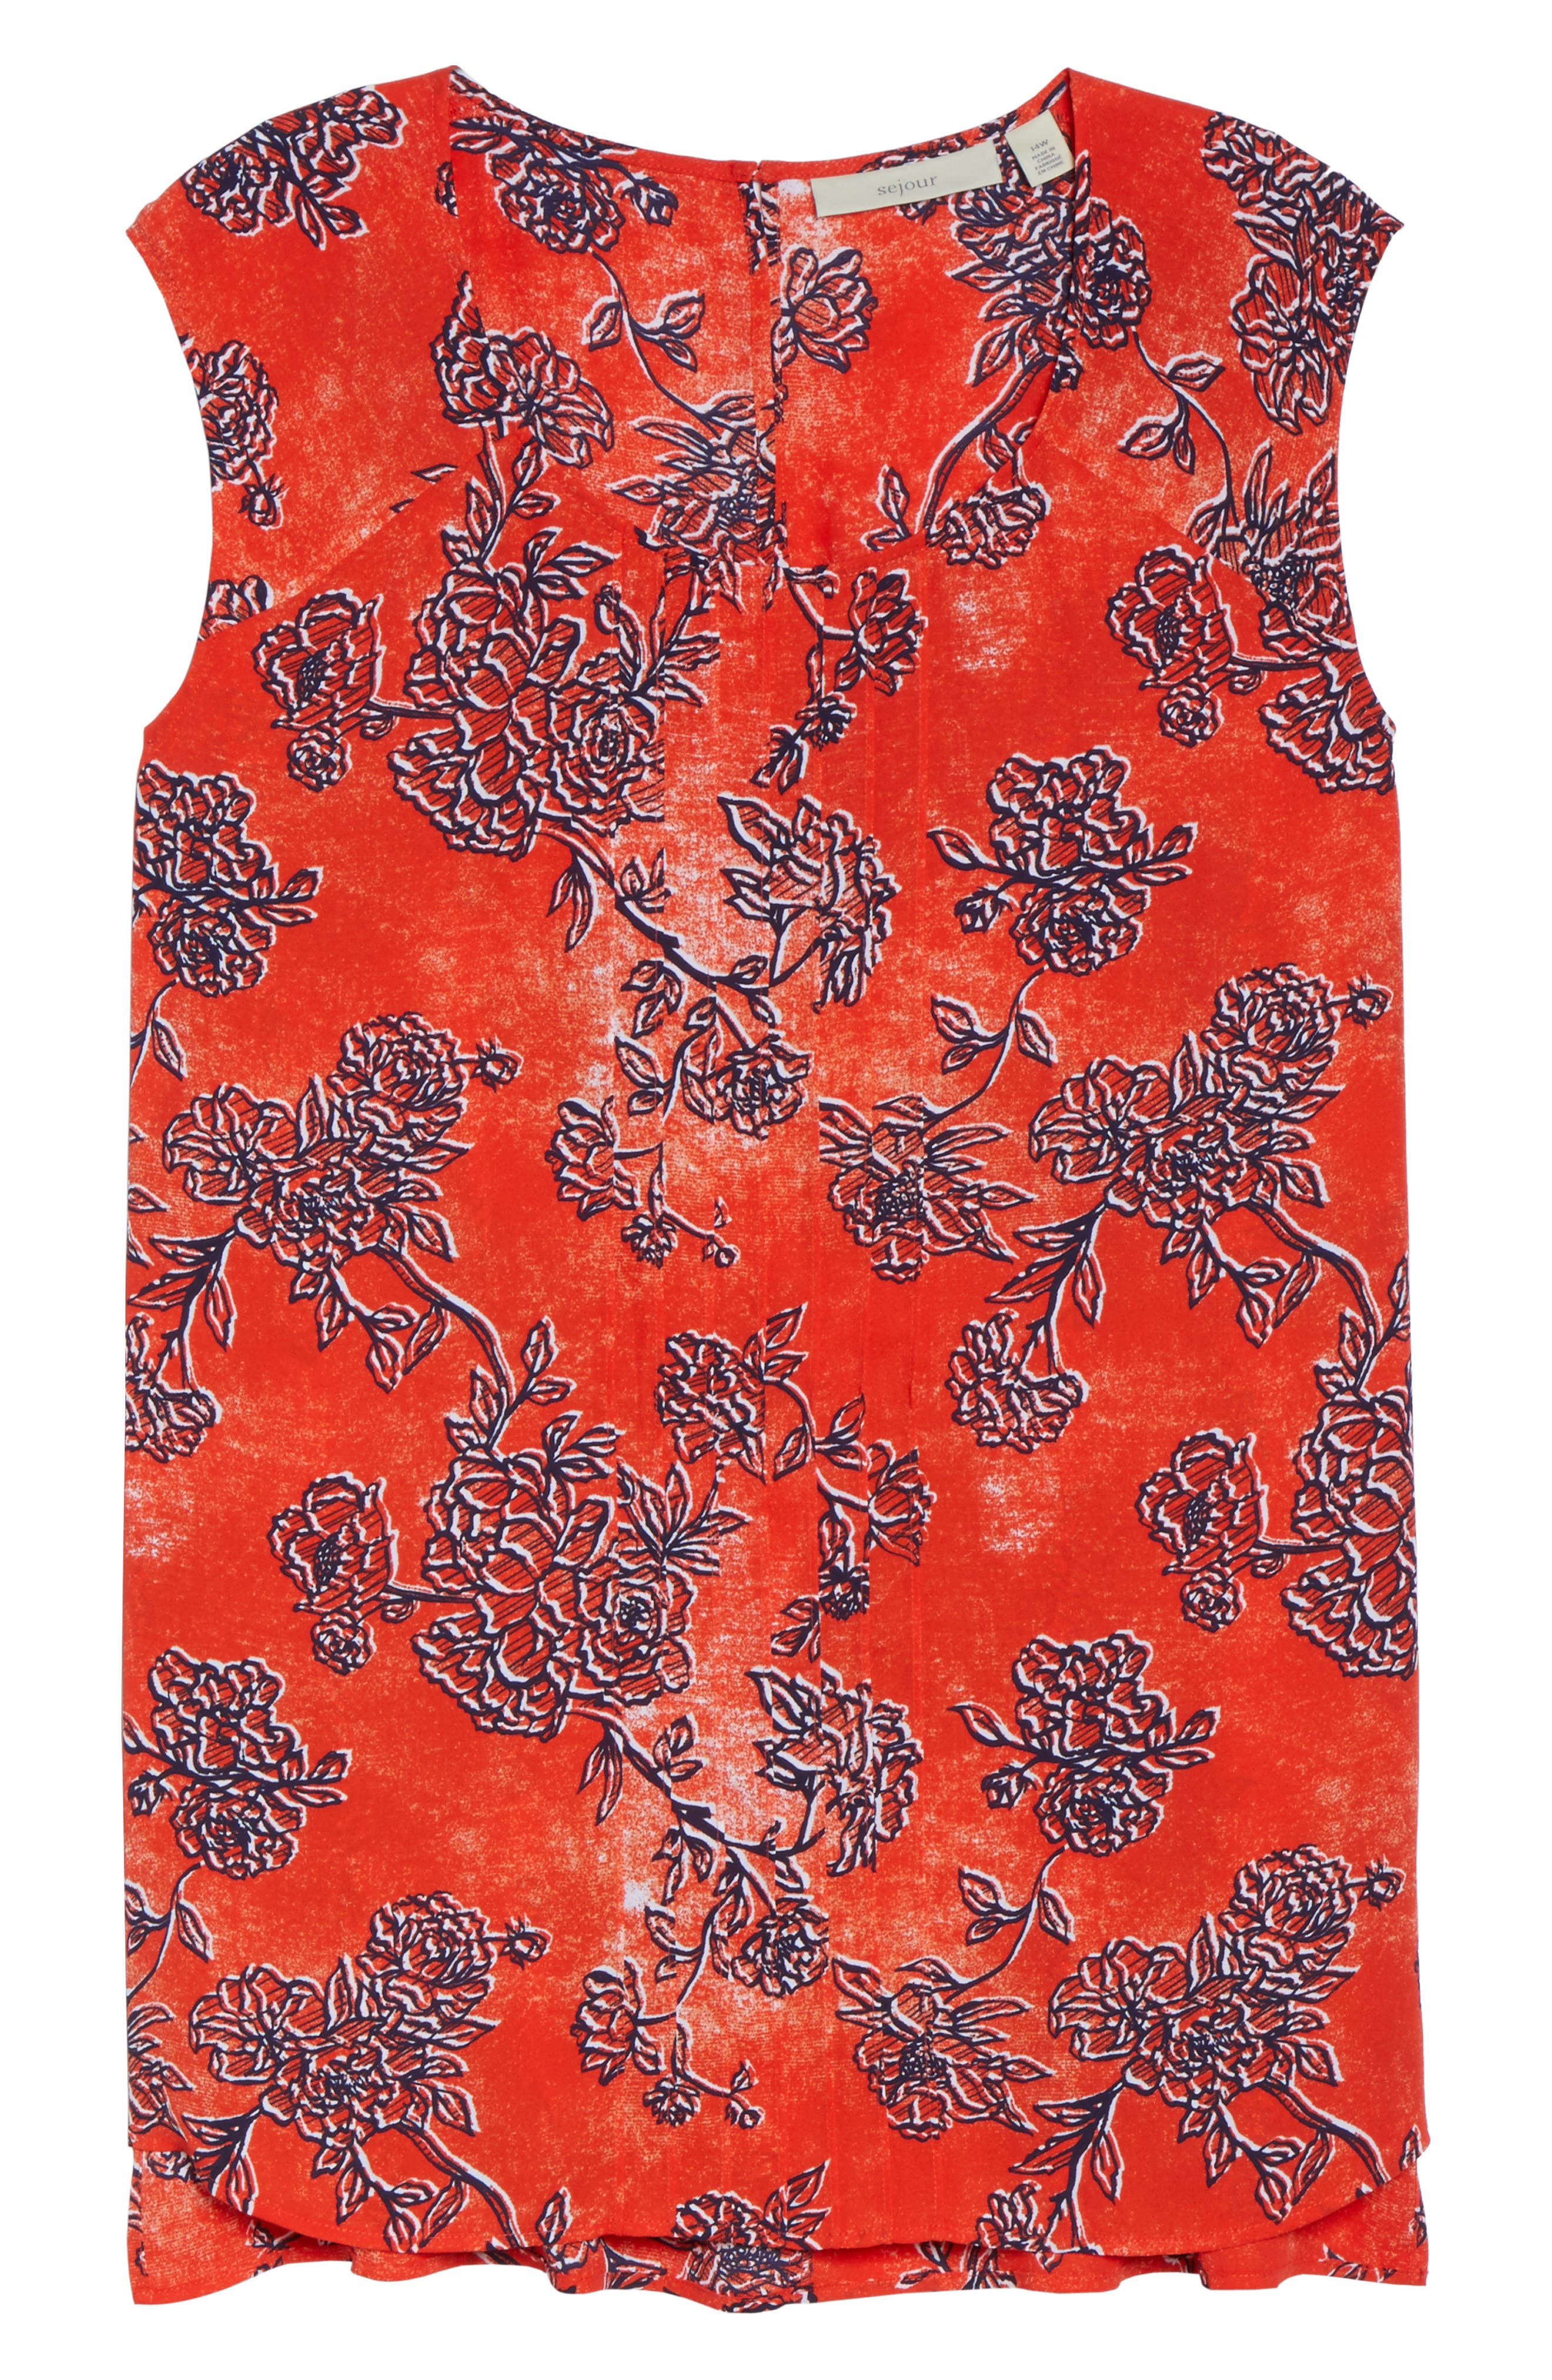 Pintuck Tank,                             Alternate thumbnail 6, color,                             Red Fiery Floral Print